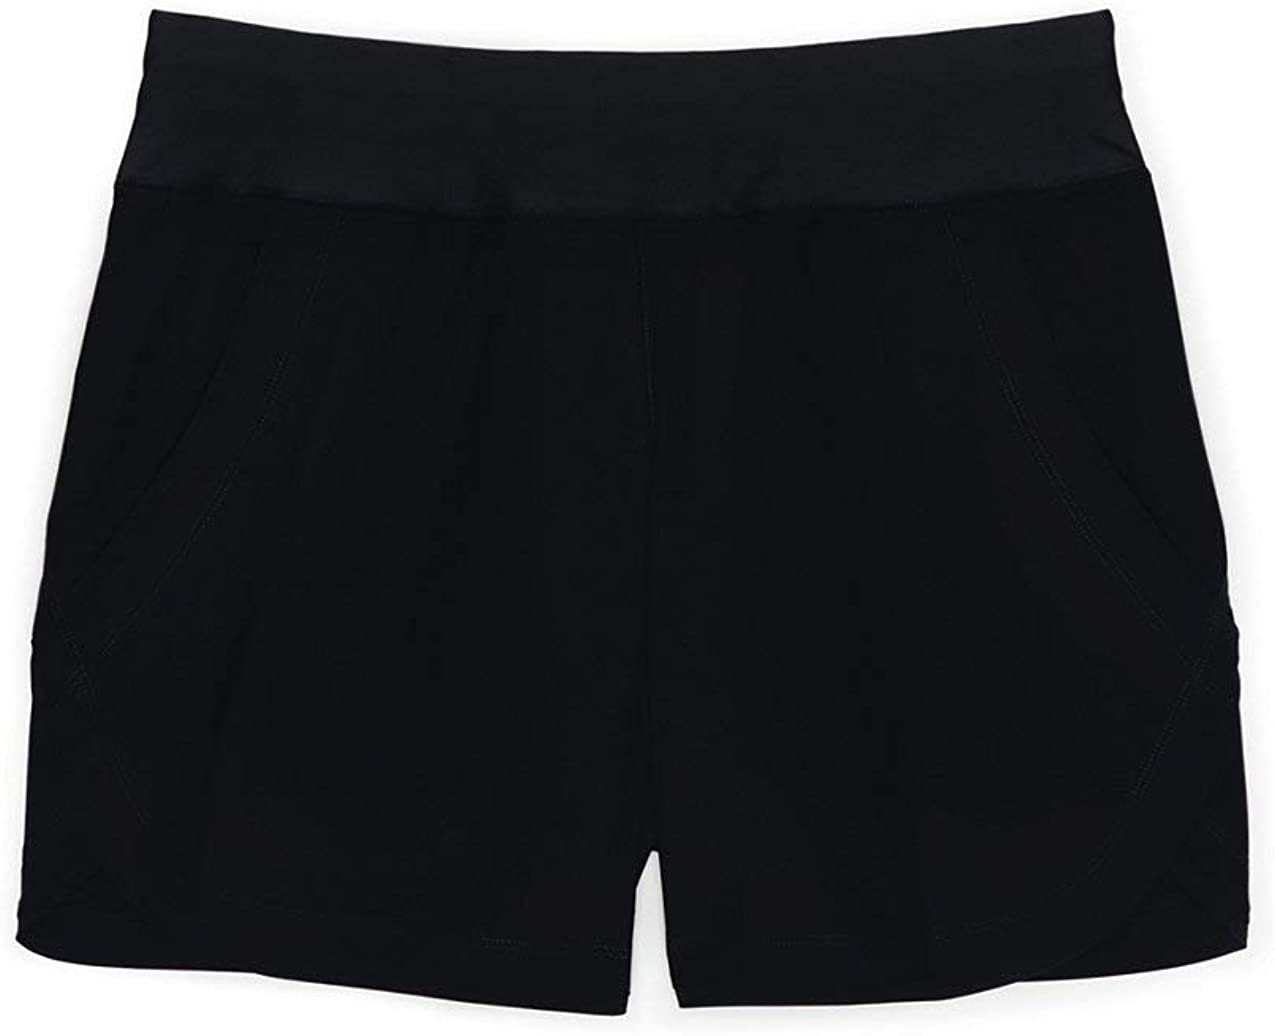 Lands End Womens 5 Quick Dry Elastic Waist Board Shorts Swim Cover-up Shorts with Panty